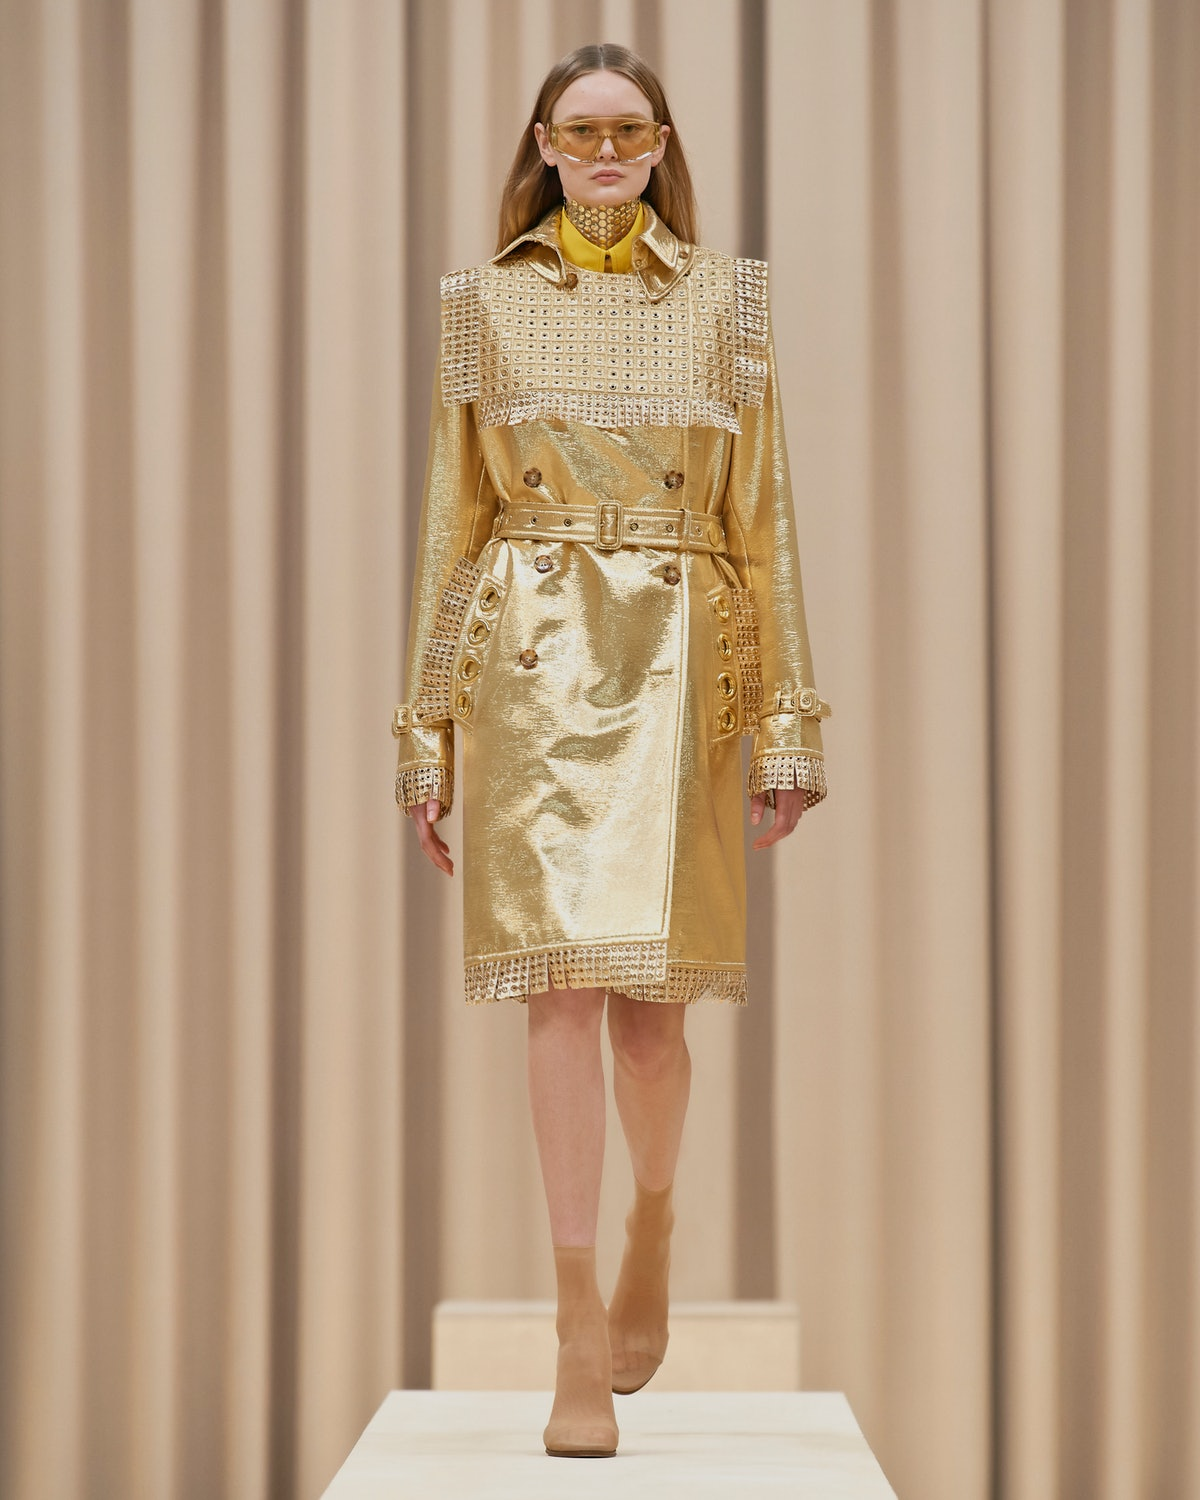 Model walks in Burberry's Fall/Winter 2021 show in an all gold outfit.